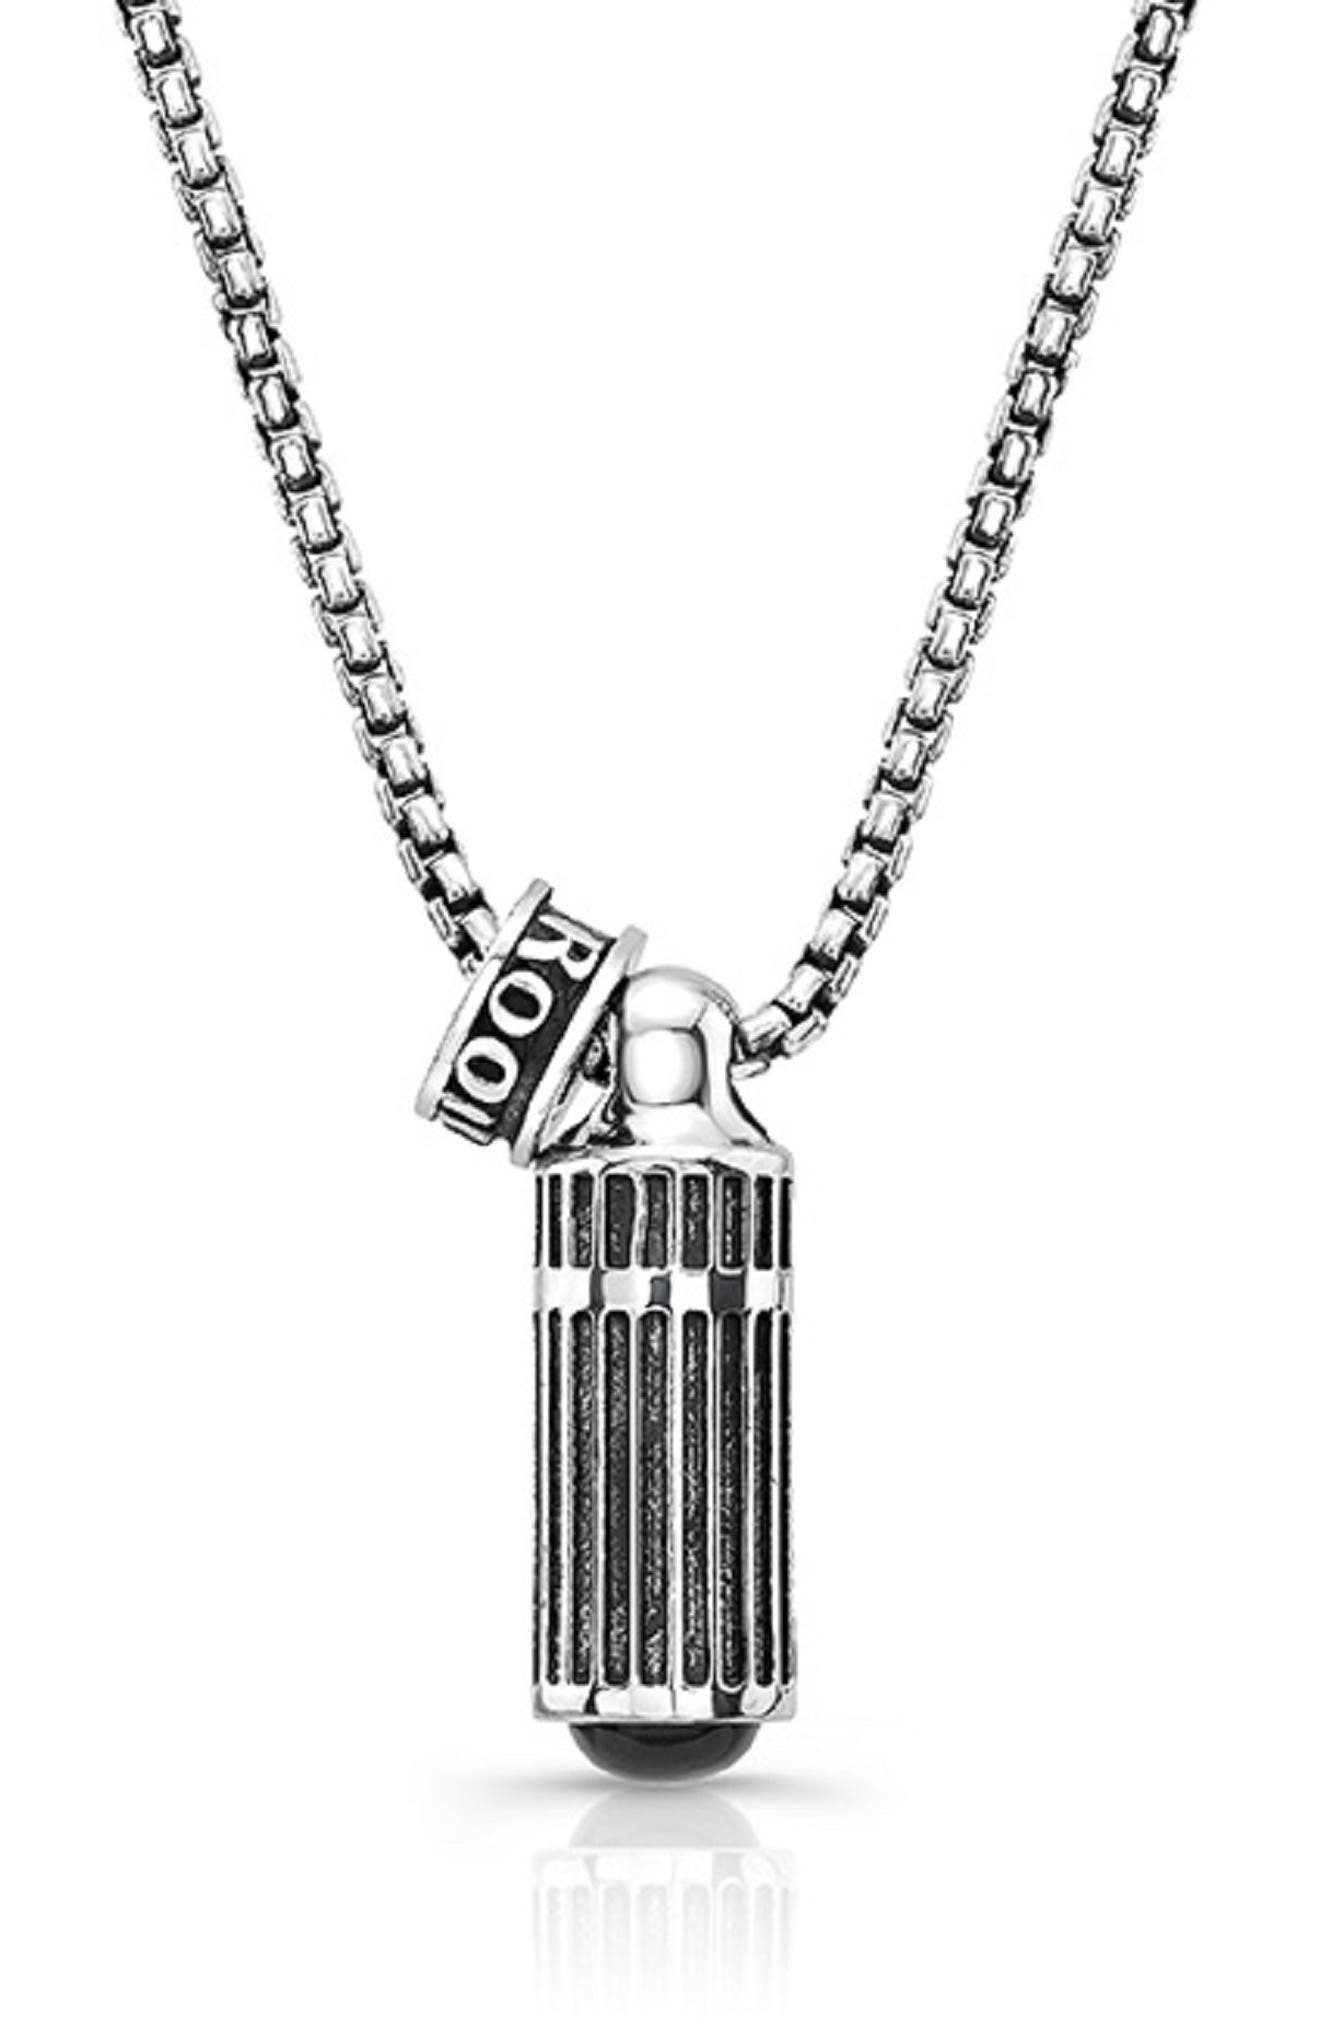 Room101 Tunnel Vision Pendant Necklace